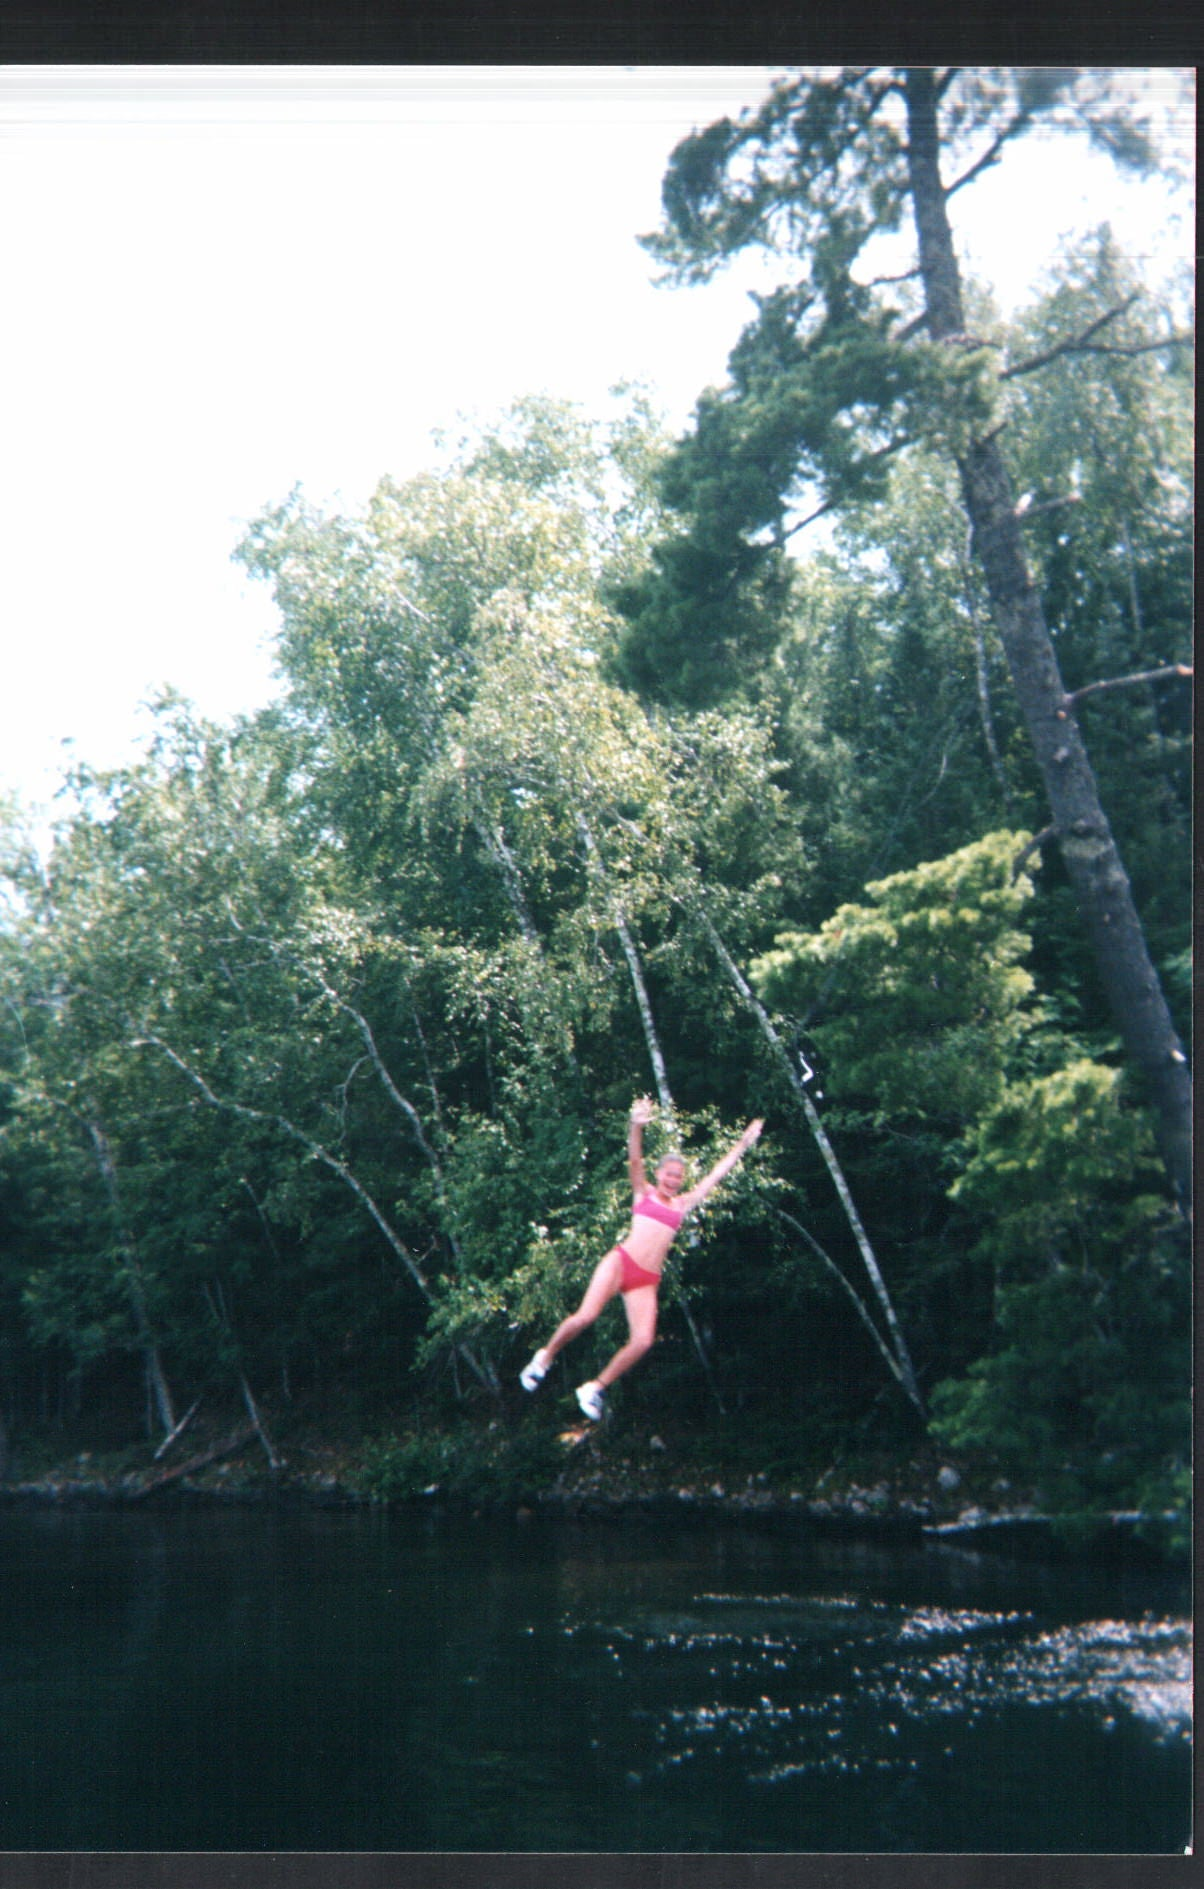 Rope swing, Boulder Junction, Wisconsin, cabin, White Sand Lake, Molly Heffinger, Molly Graves, water, summer